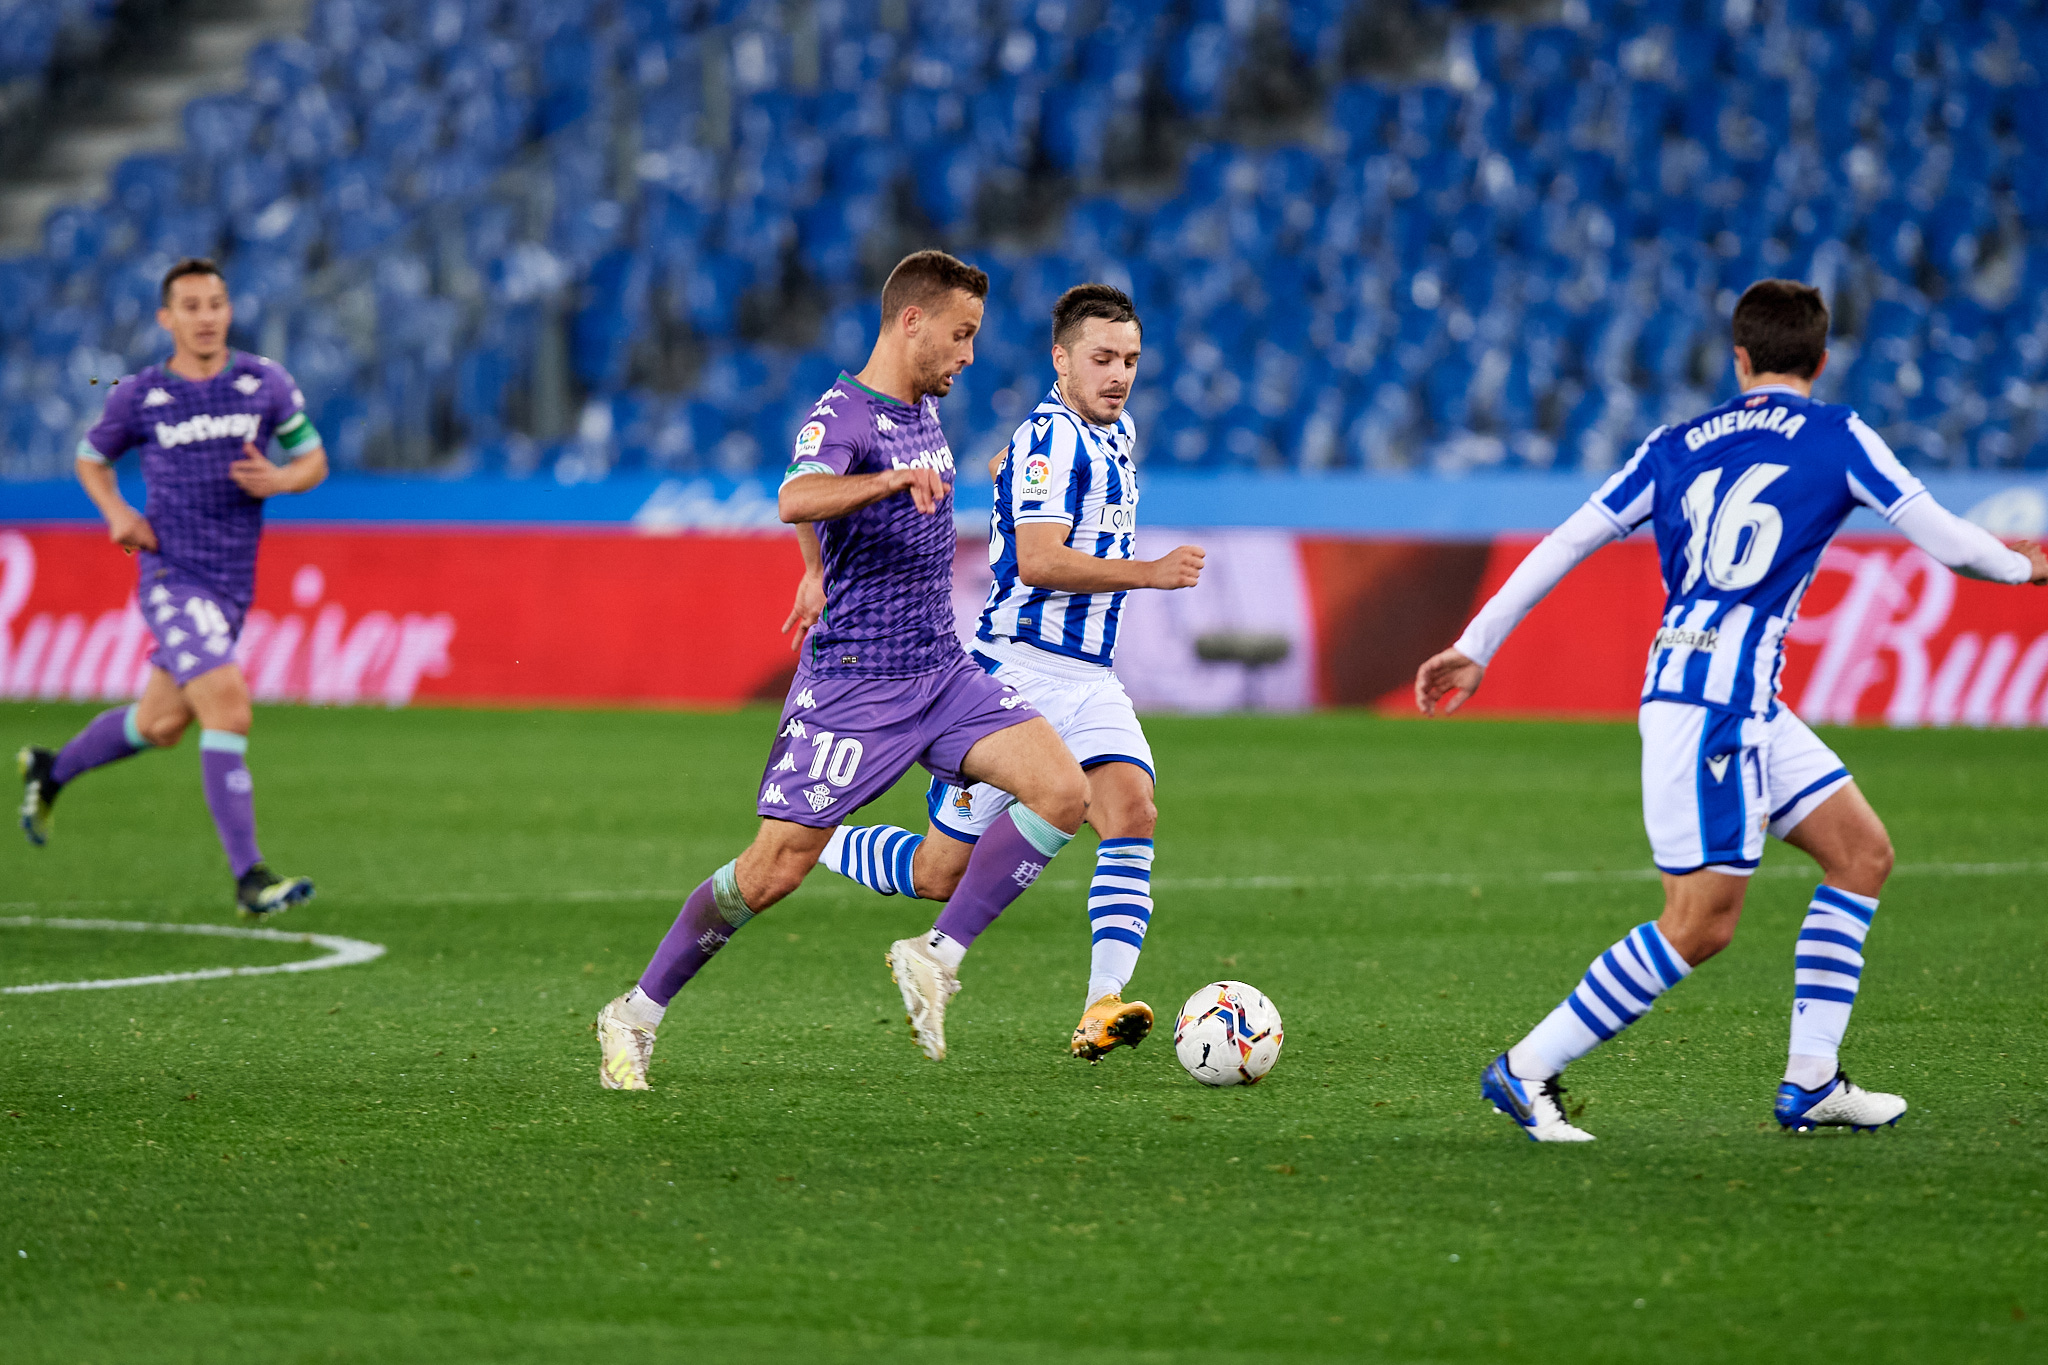 Real Betis mount late comeback to earn point at Real Sociedad